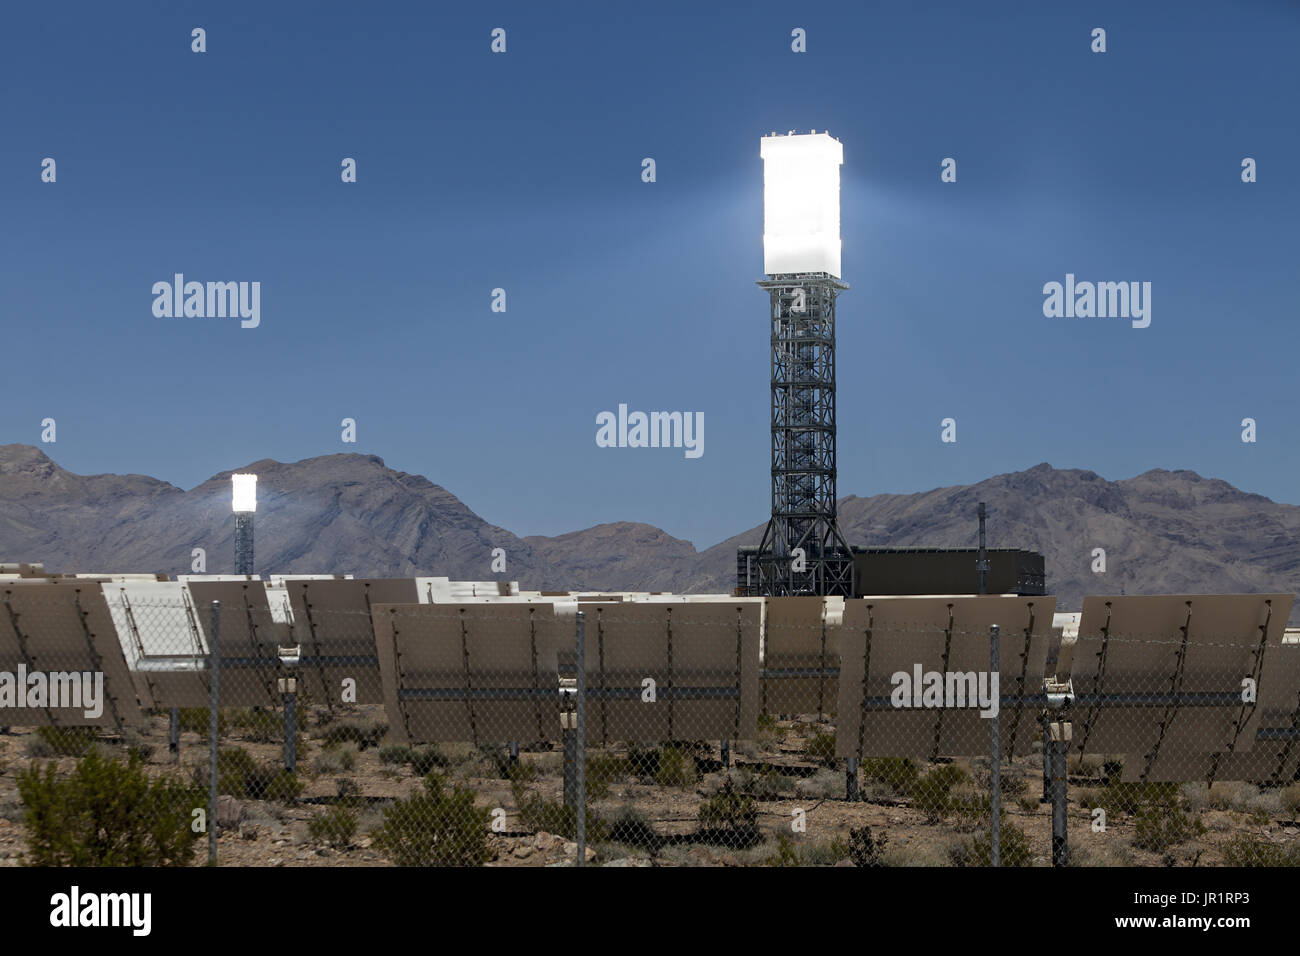 Tower Boiler Stock Photos & Tower Boiler Stock Images - Alamy